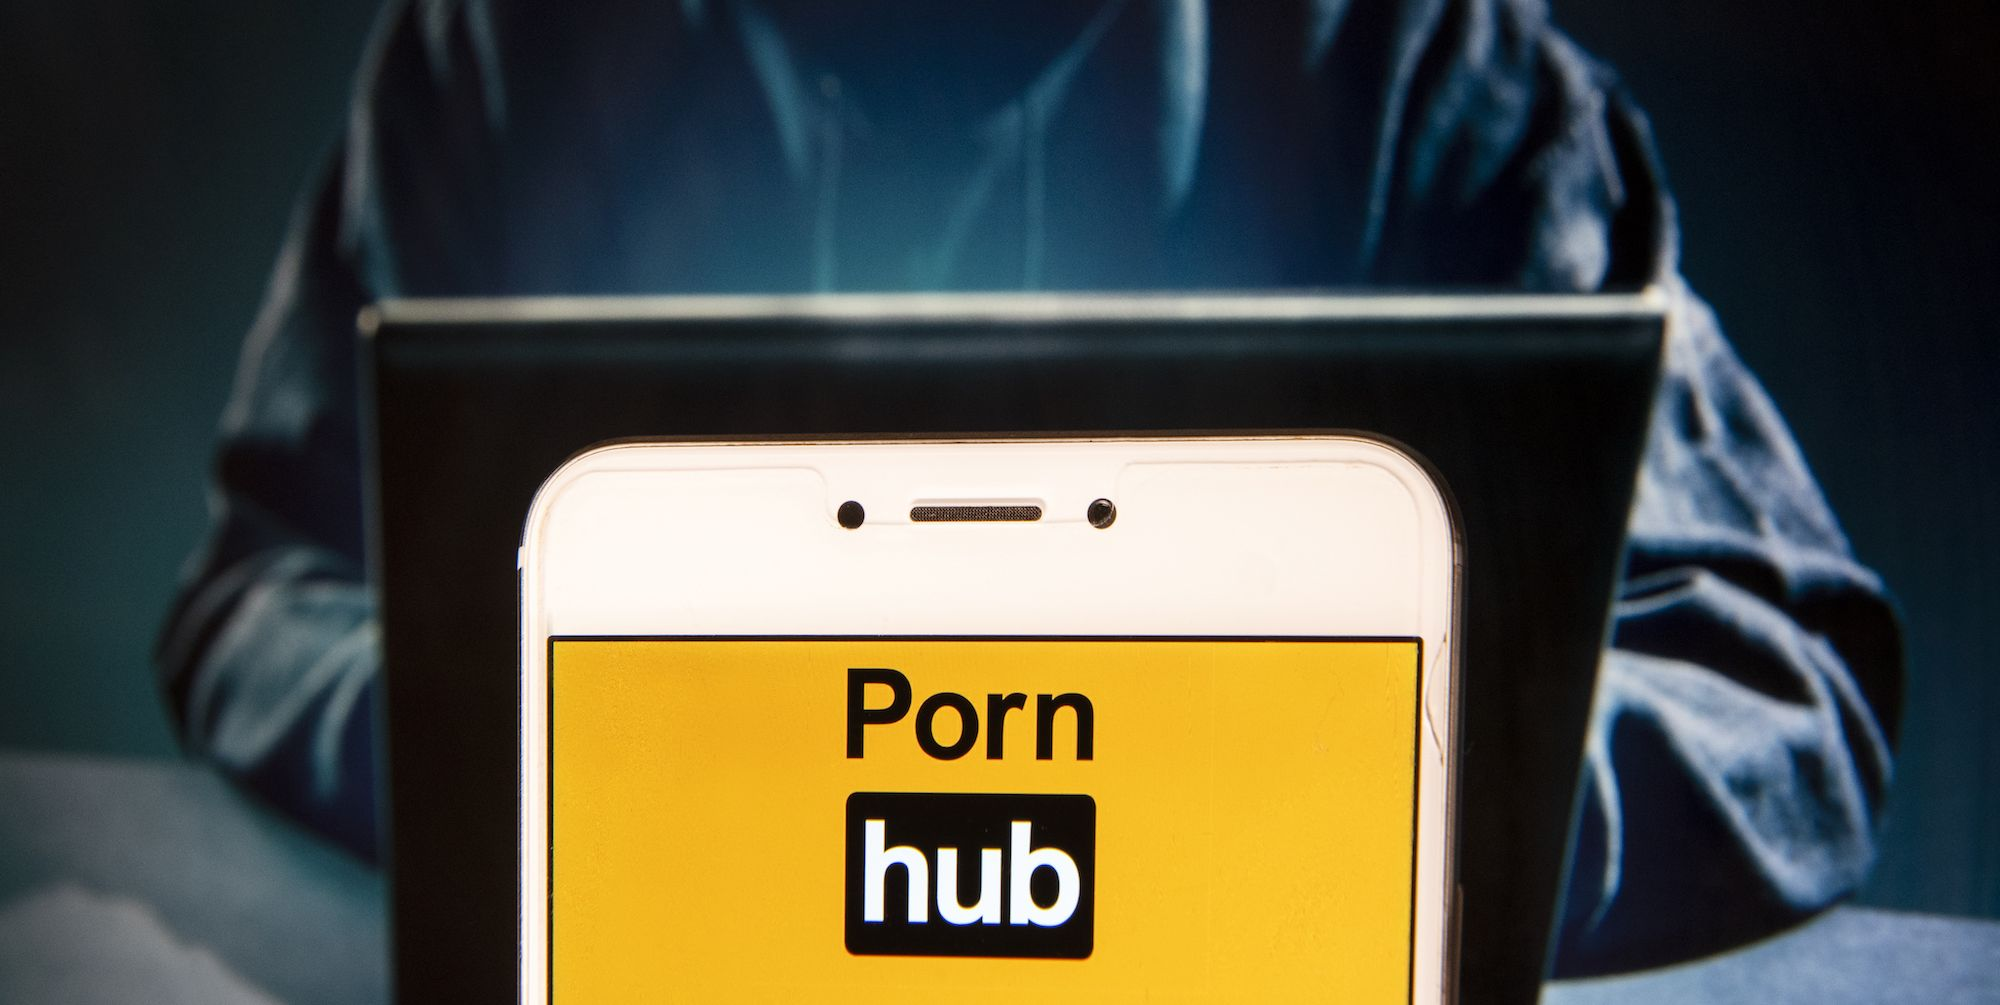 Pornographic video sharing website Pornhub logo is seen on